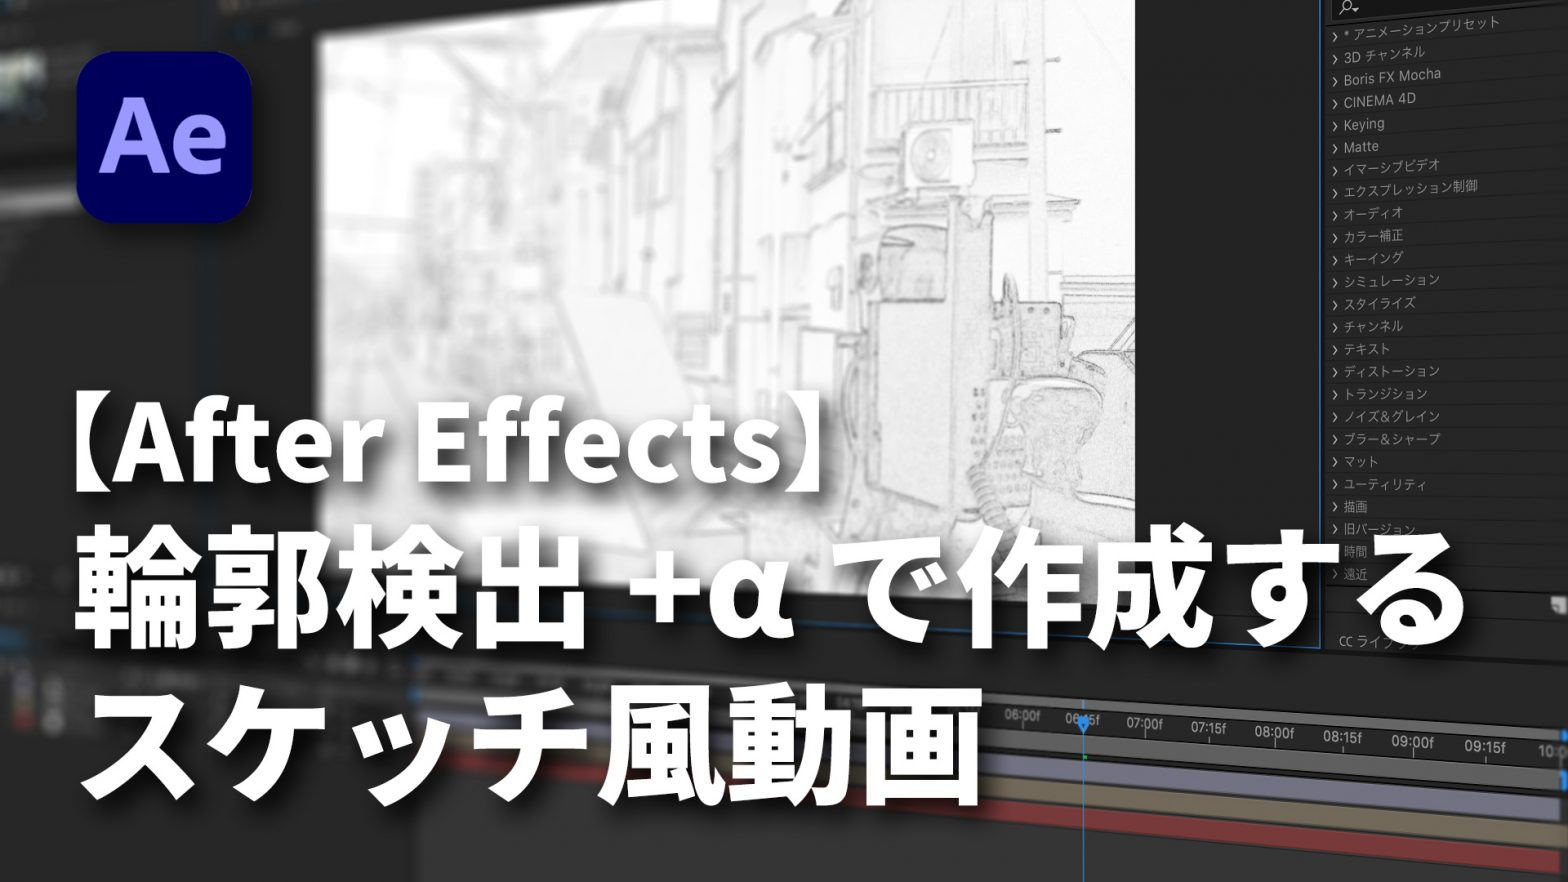 【After Effects】輪郭検出 +α で作成するスケッチ風動画